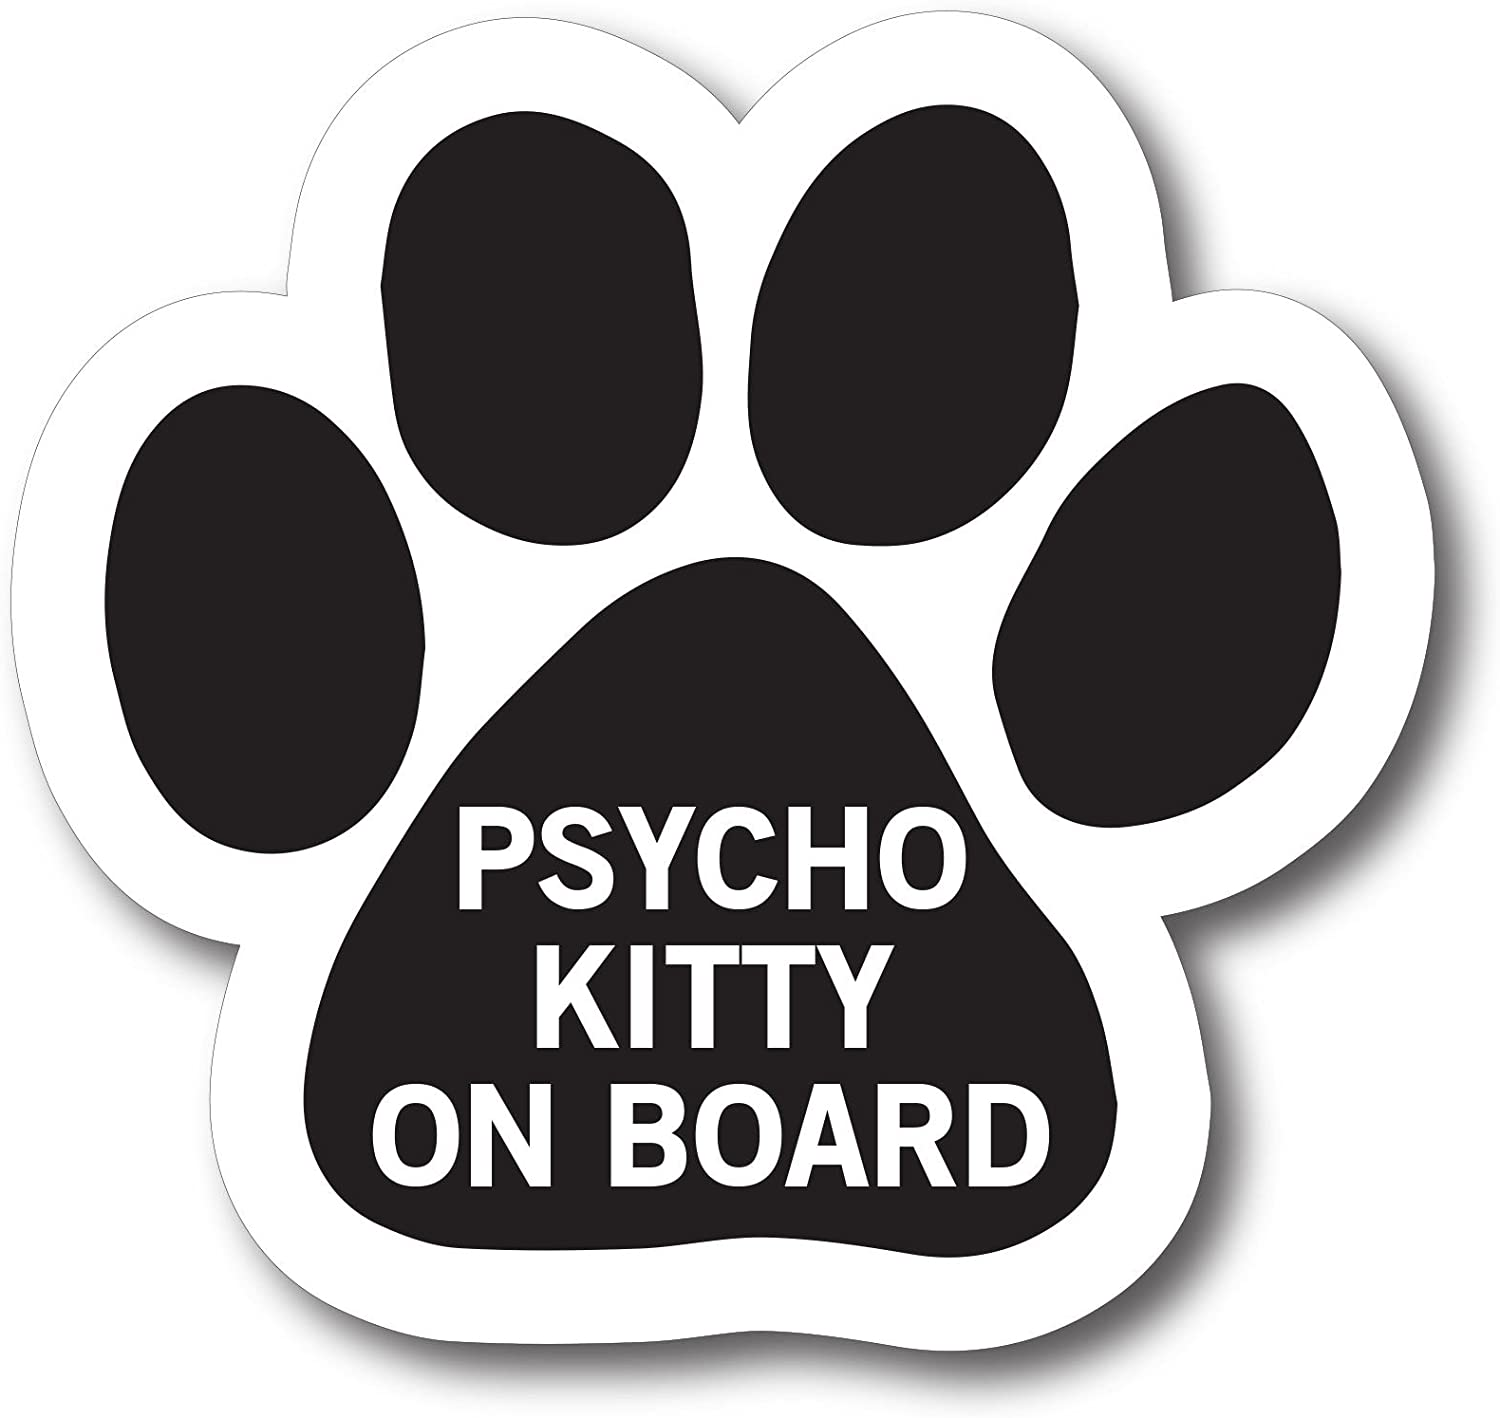 Magnet Me Up Psycho Kitty on Board Pawprint Car Magnet Paw Print Auto Truck Decal Magnet